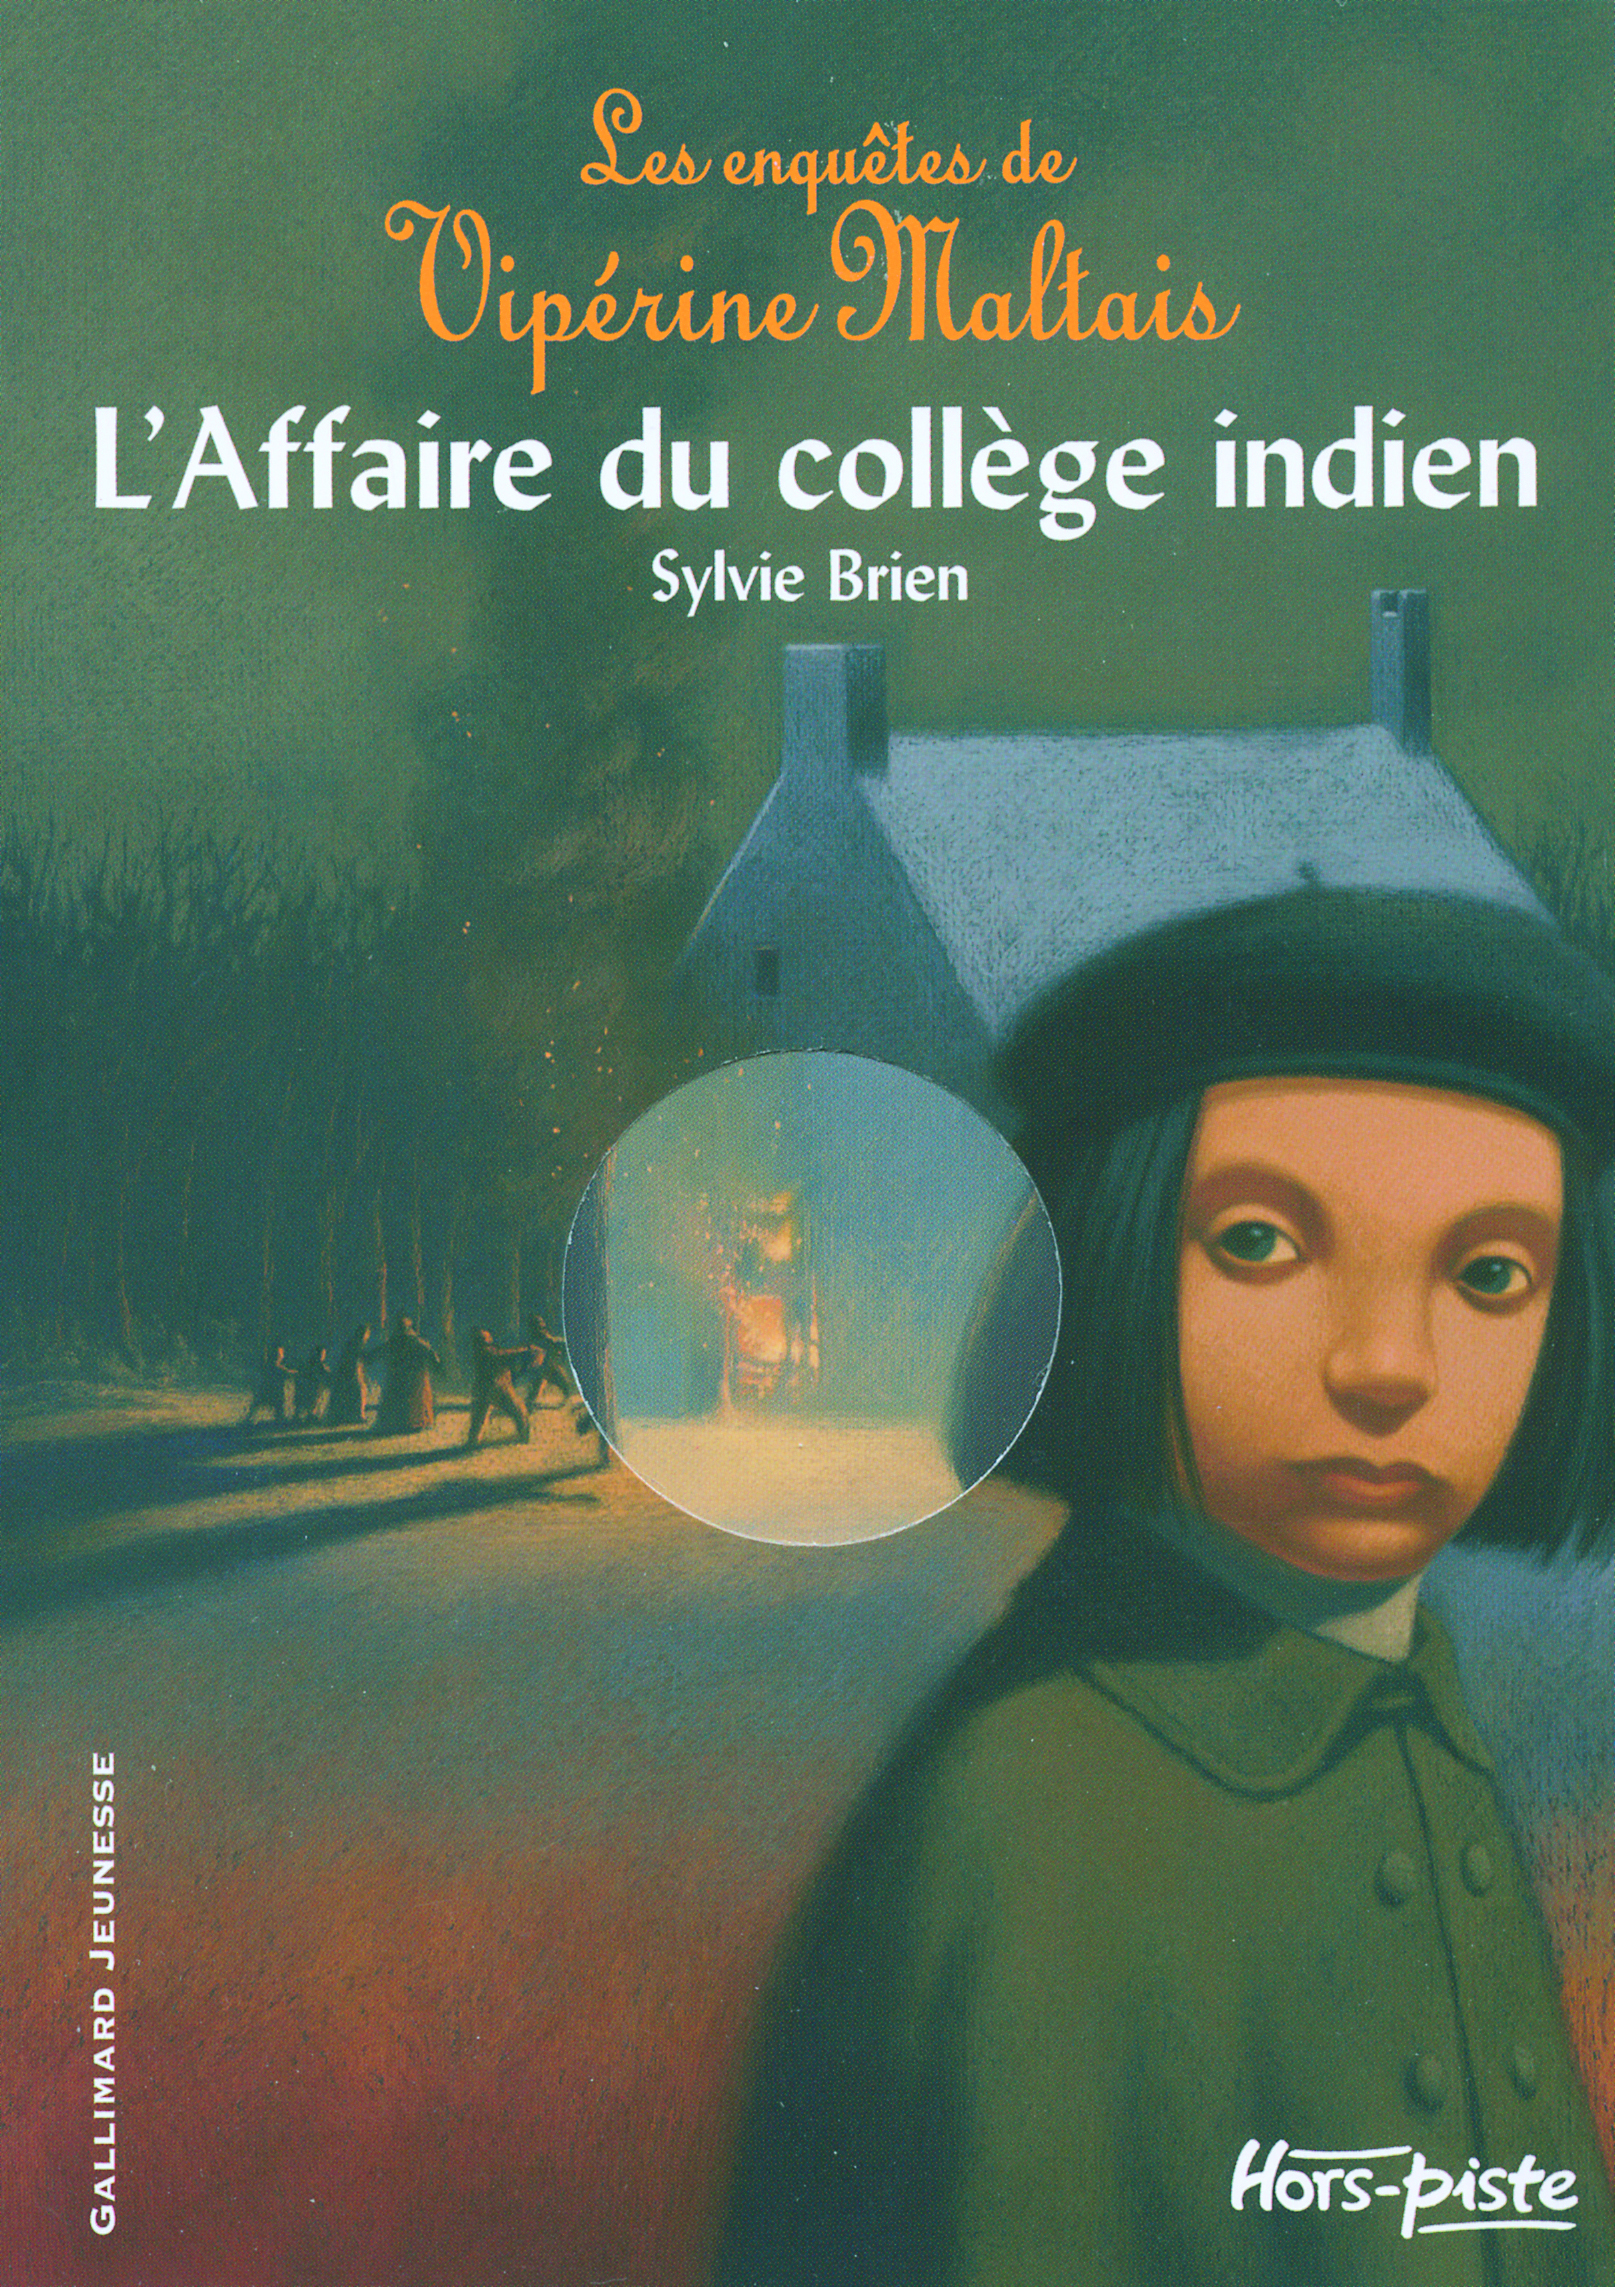 L'AFFAIRE DU COLLEGE INDIEN